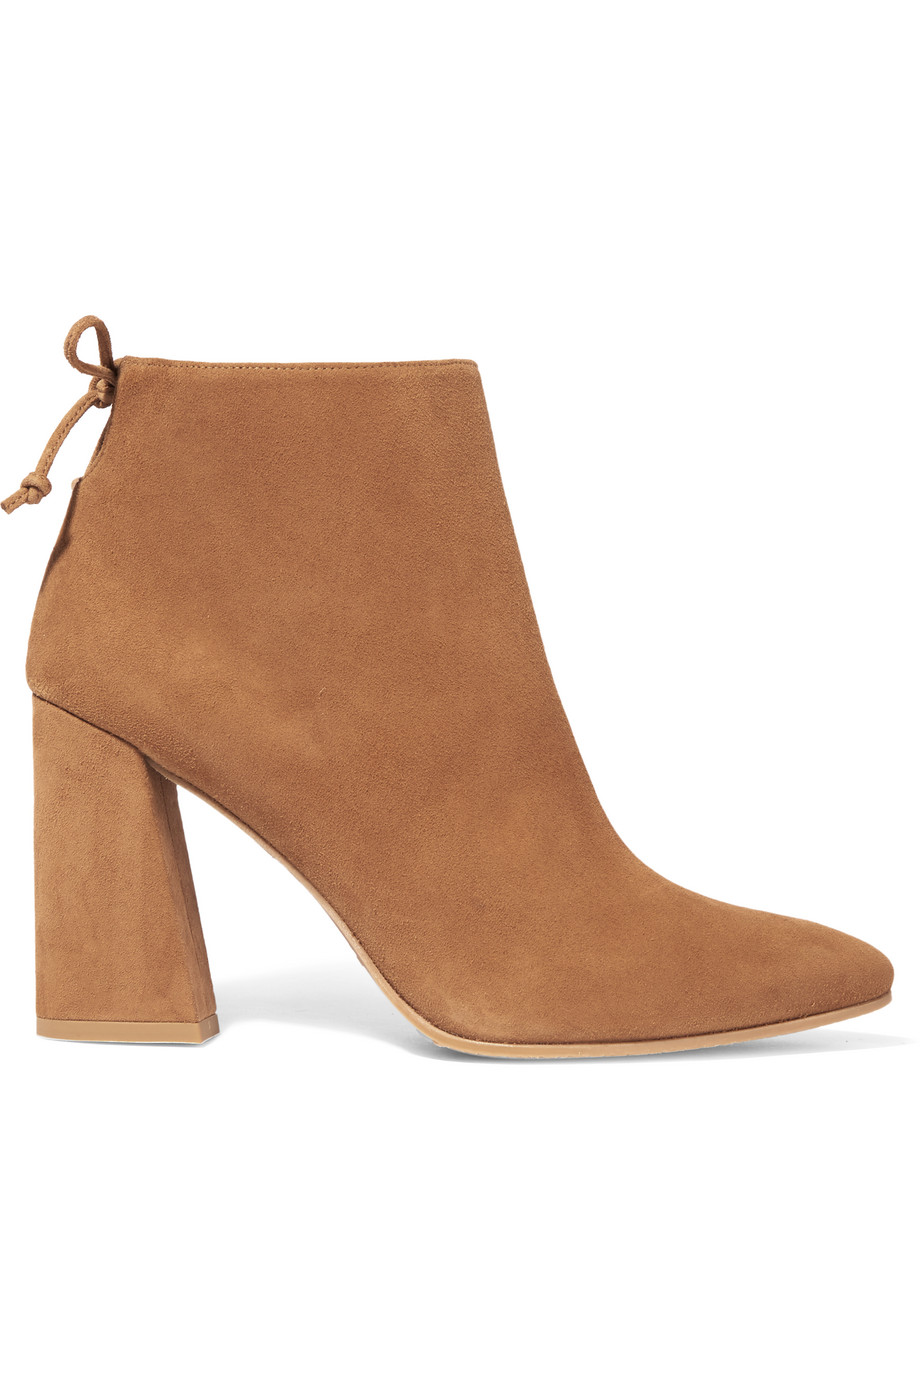 Grandiose Suede Ankle Boots, Camel, Women's US Size: 4.5, Size: 35